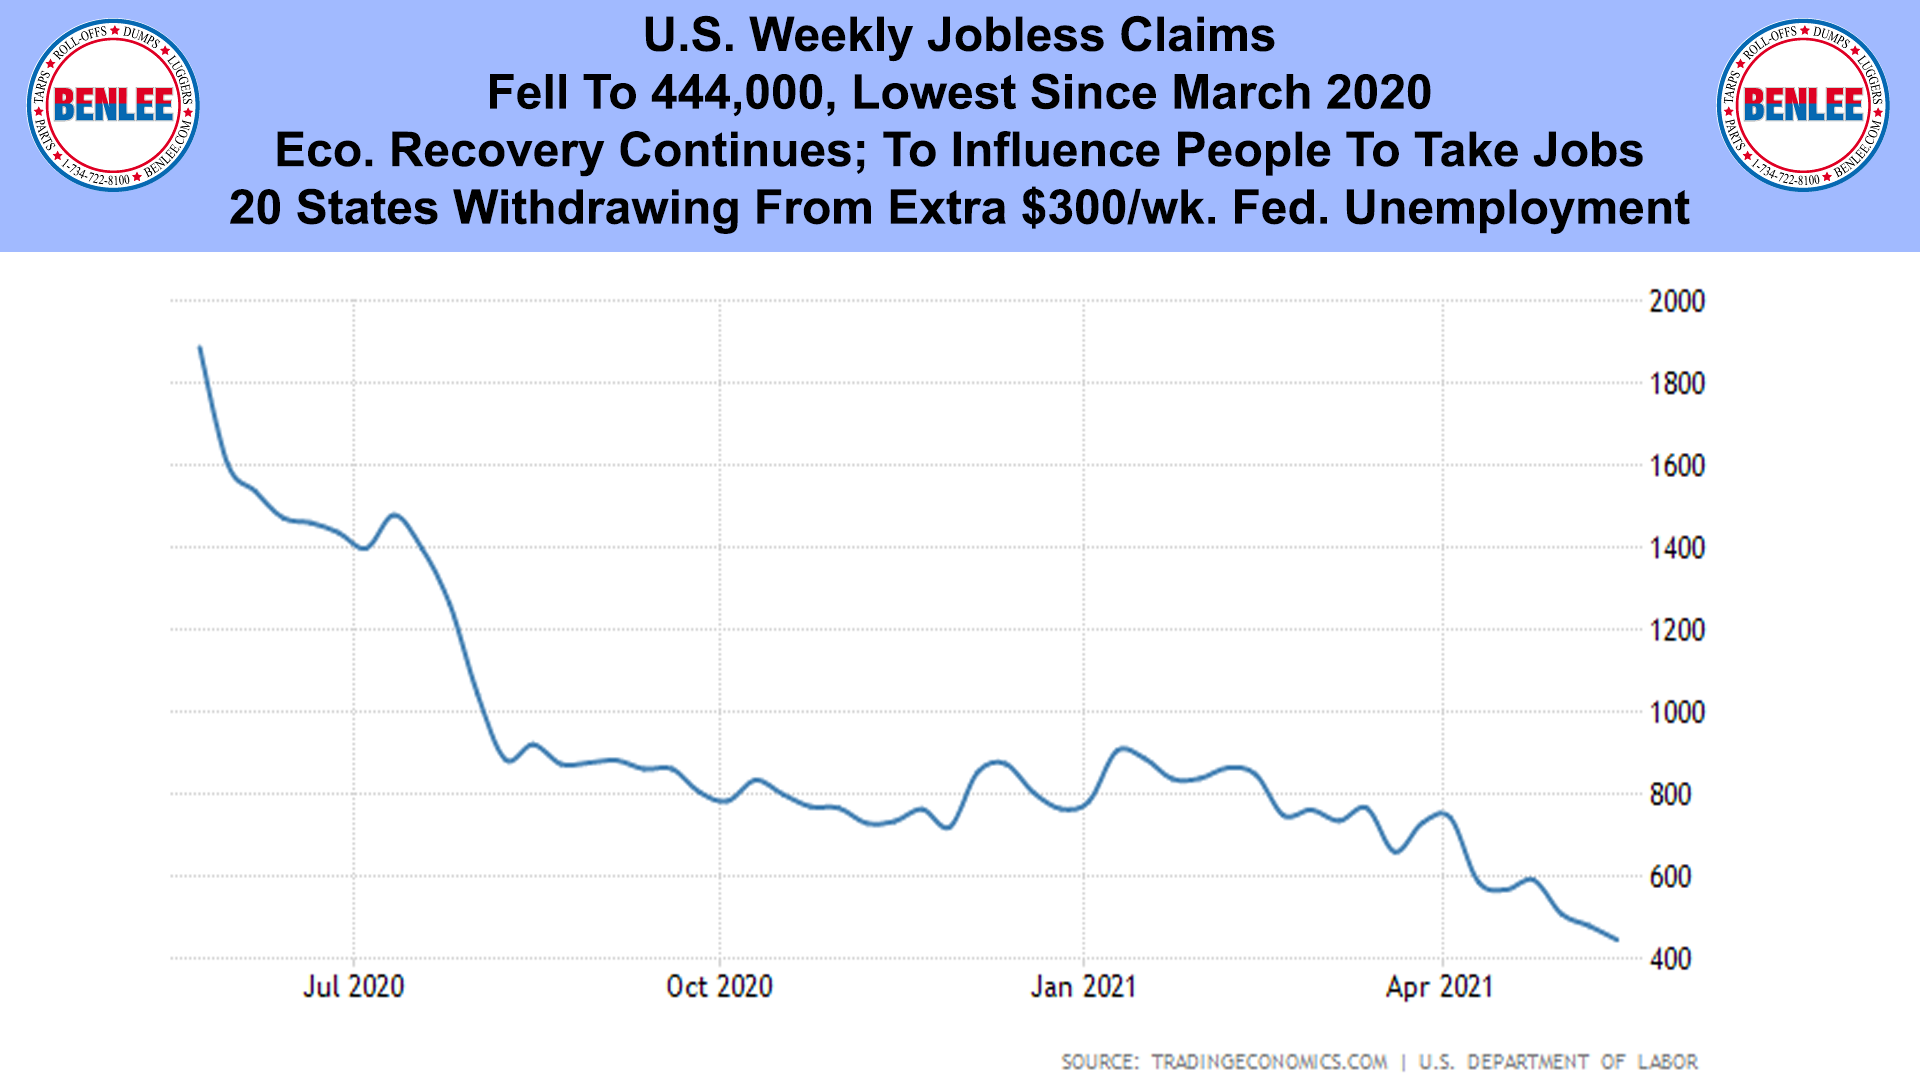 U.S. Weekly Jobless Claims